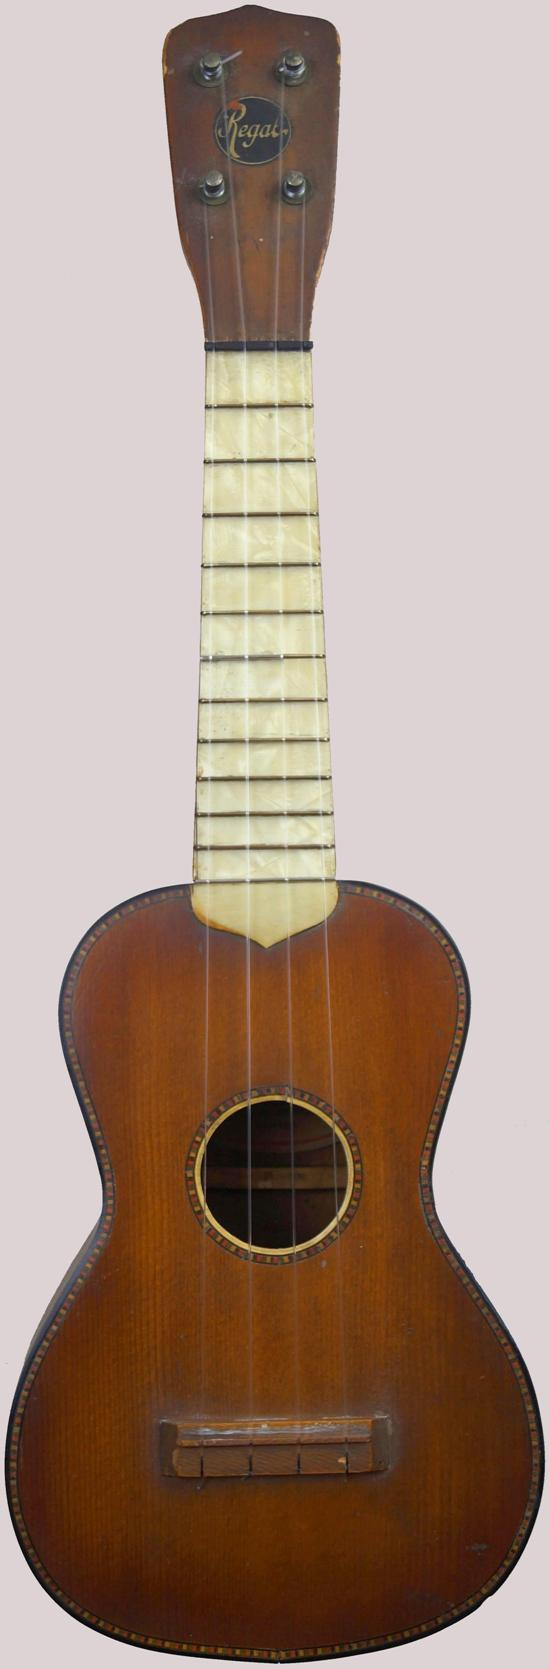 1920s Regal Black Label Soprano perloid fretboard at Ukulele Corner